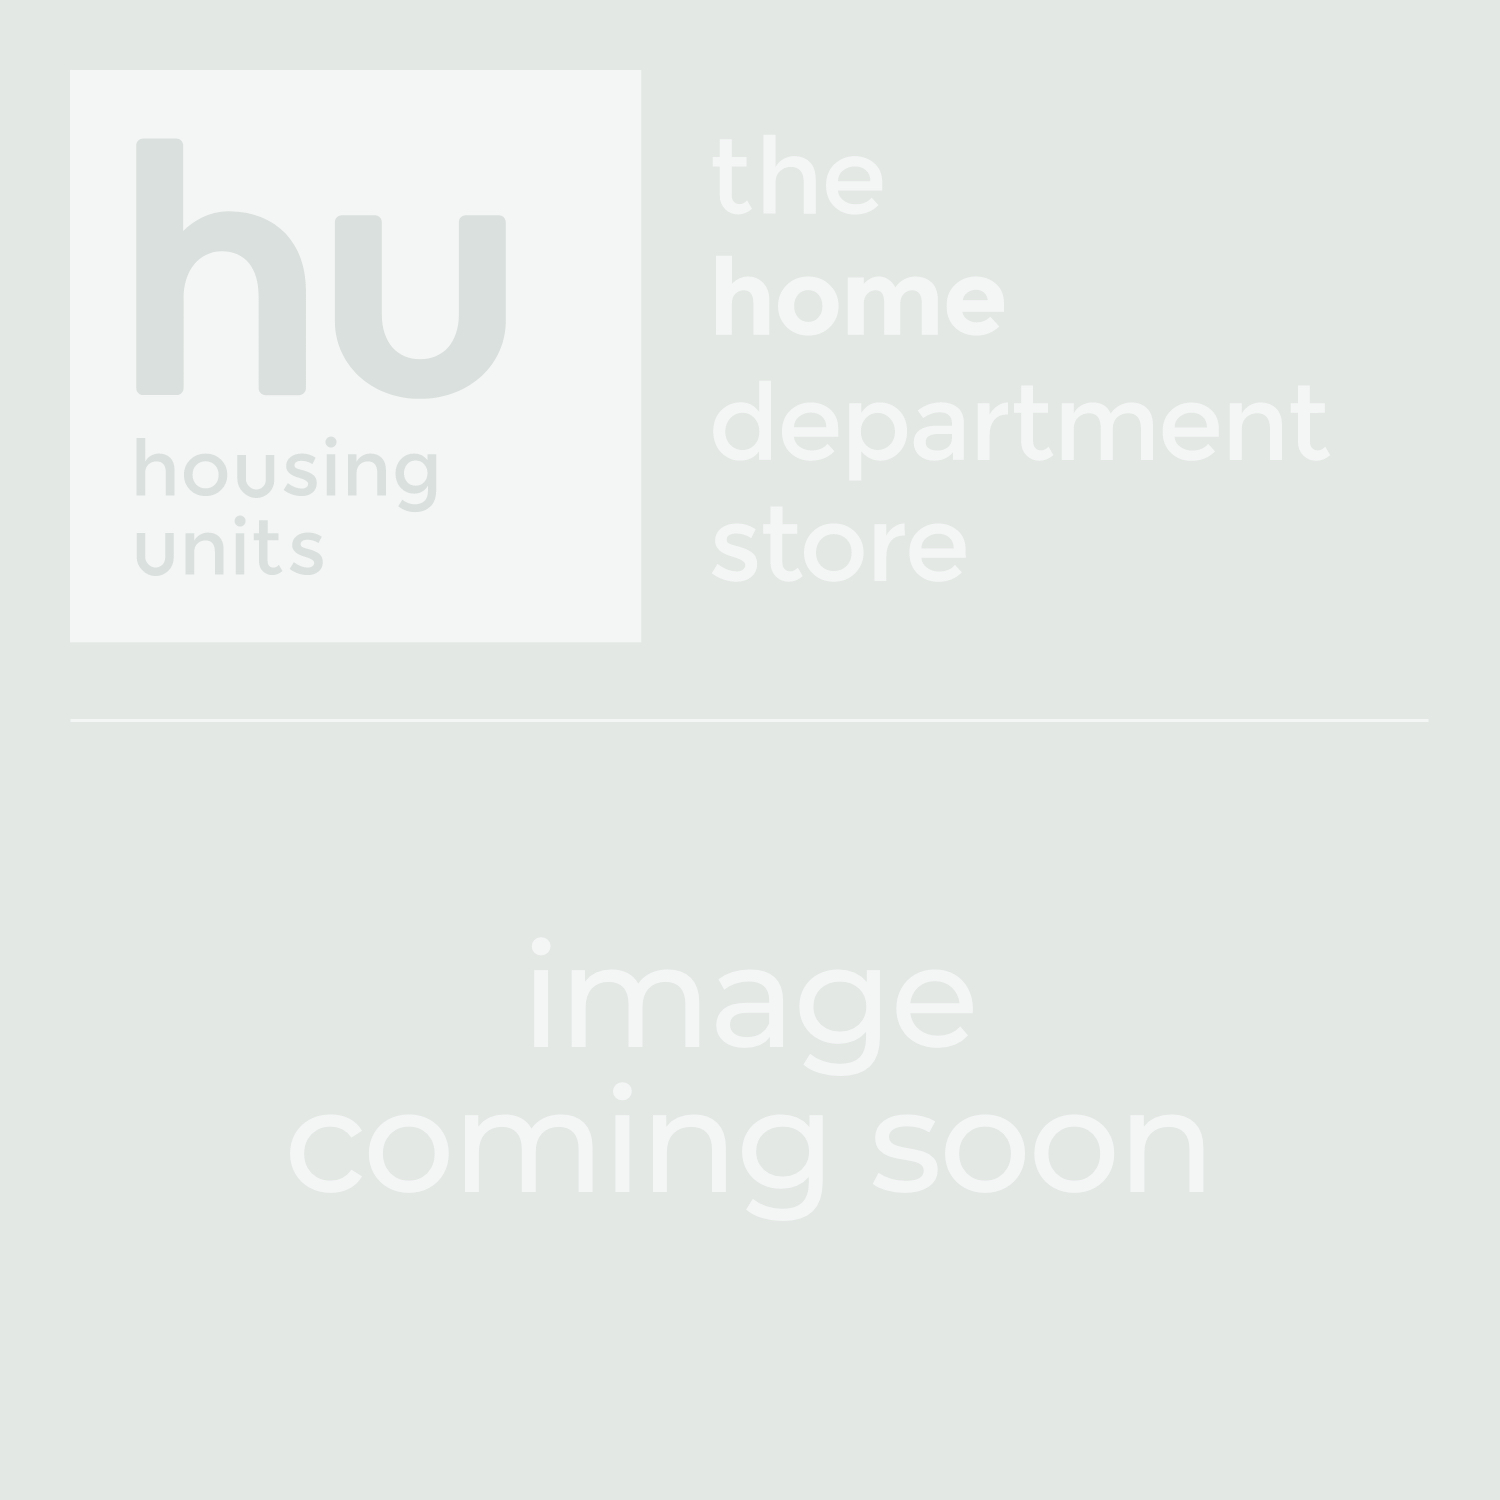 Java Reclaimed Teak 130cm Round Dining Table & 4 Valmiera Mink Chairs - Lifestyle   Housing Units